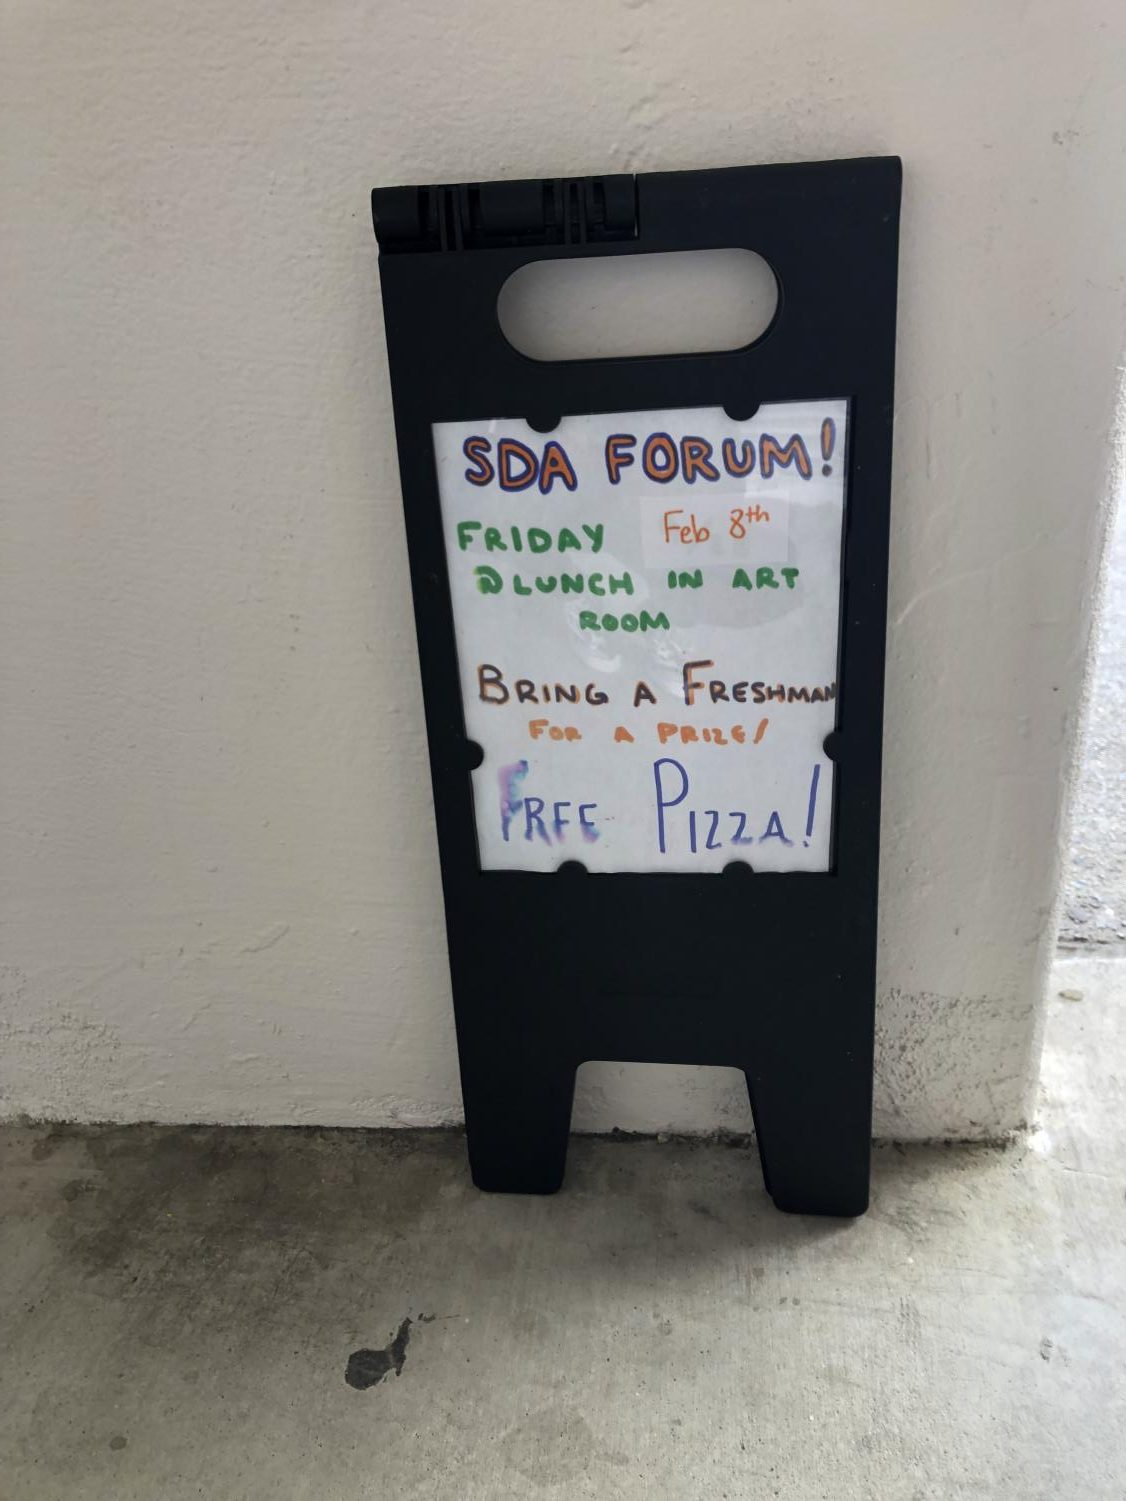 One of many signs posted around campus advertising the forum.